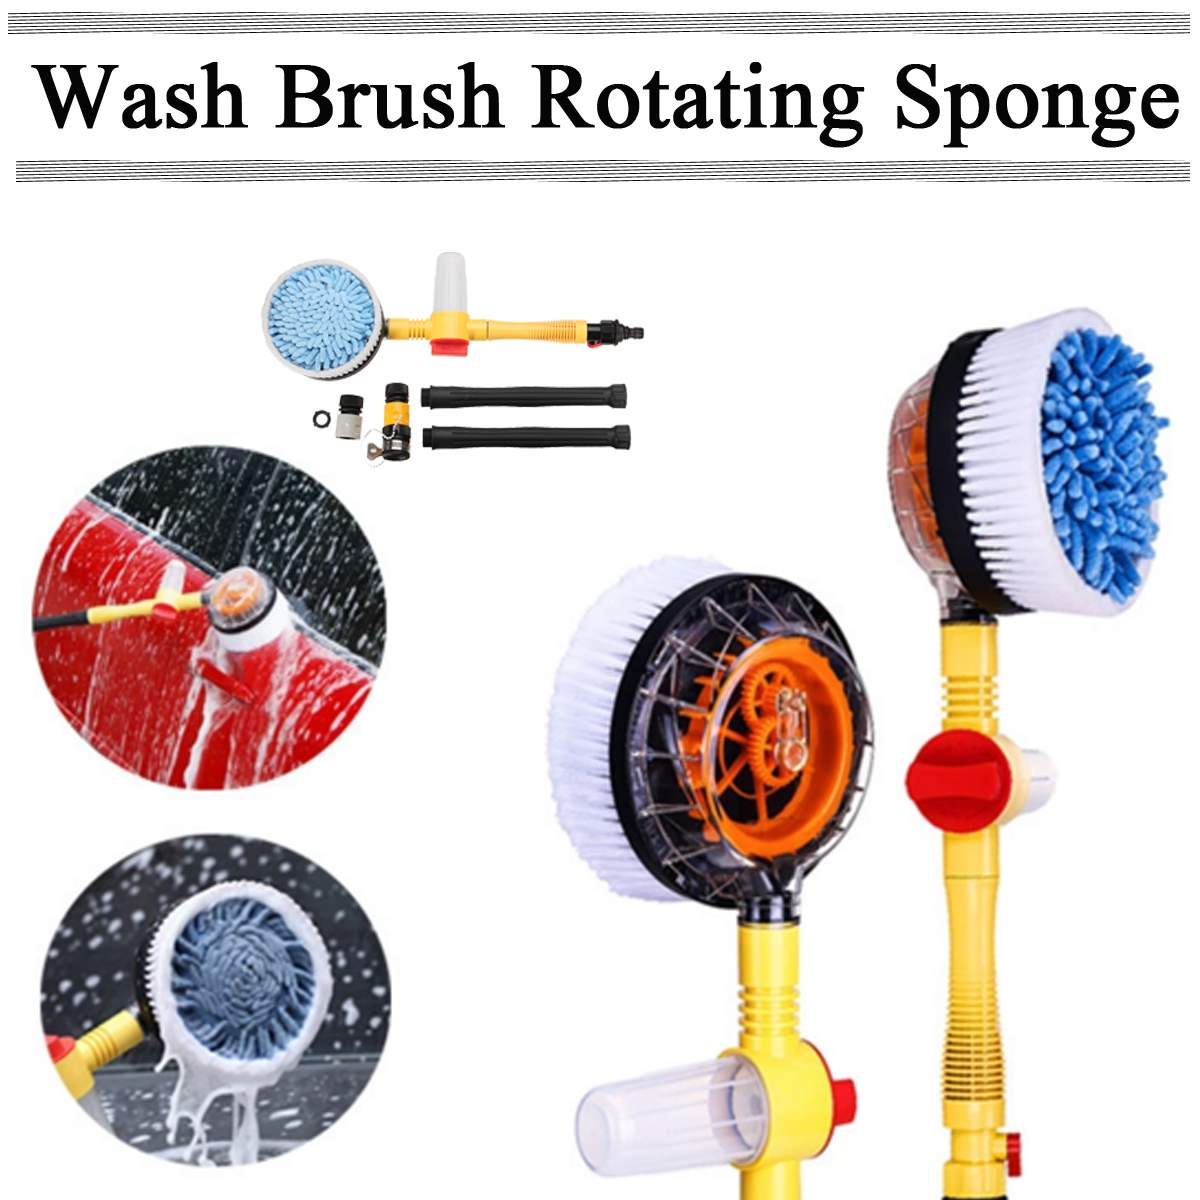 Auto-Rotating Cleaning Brush